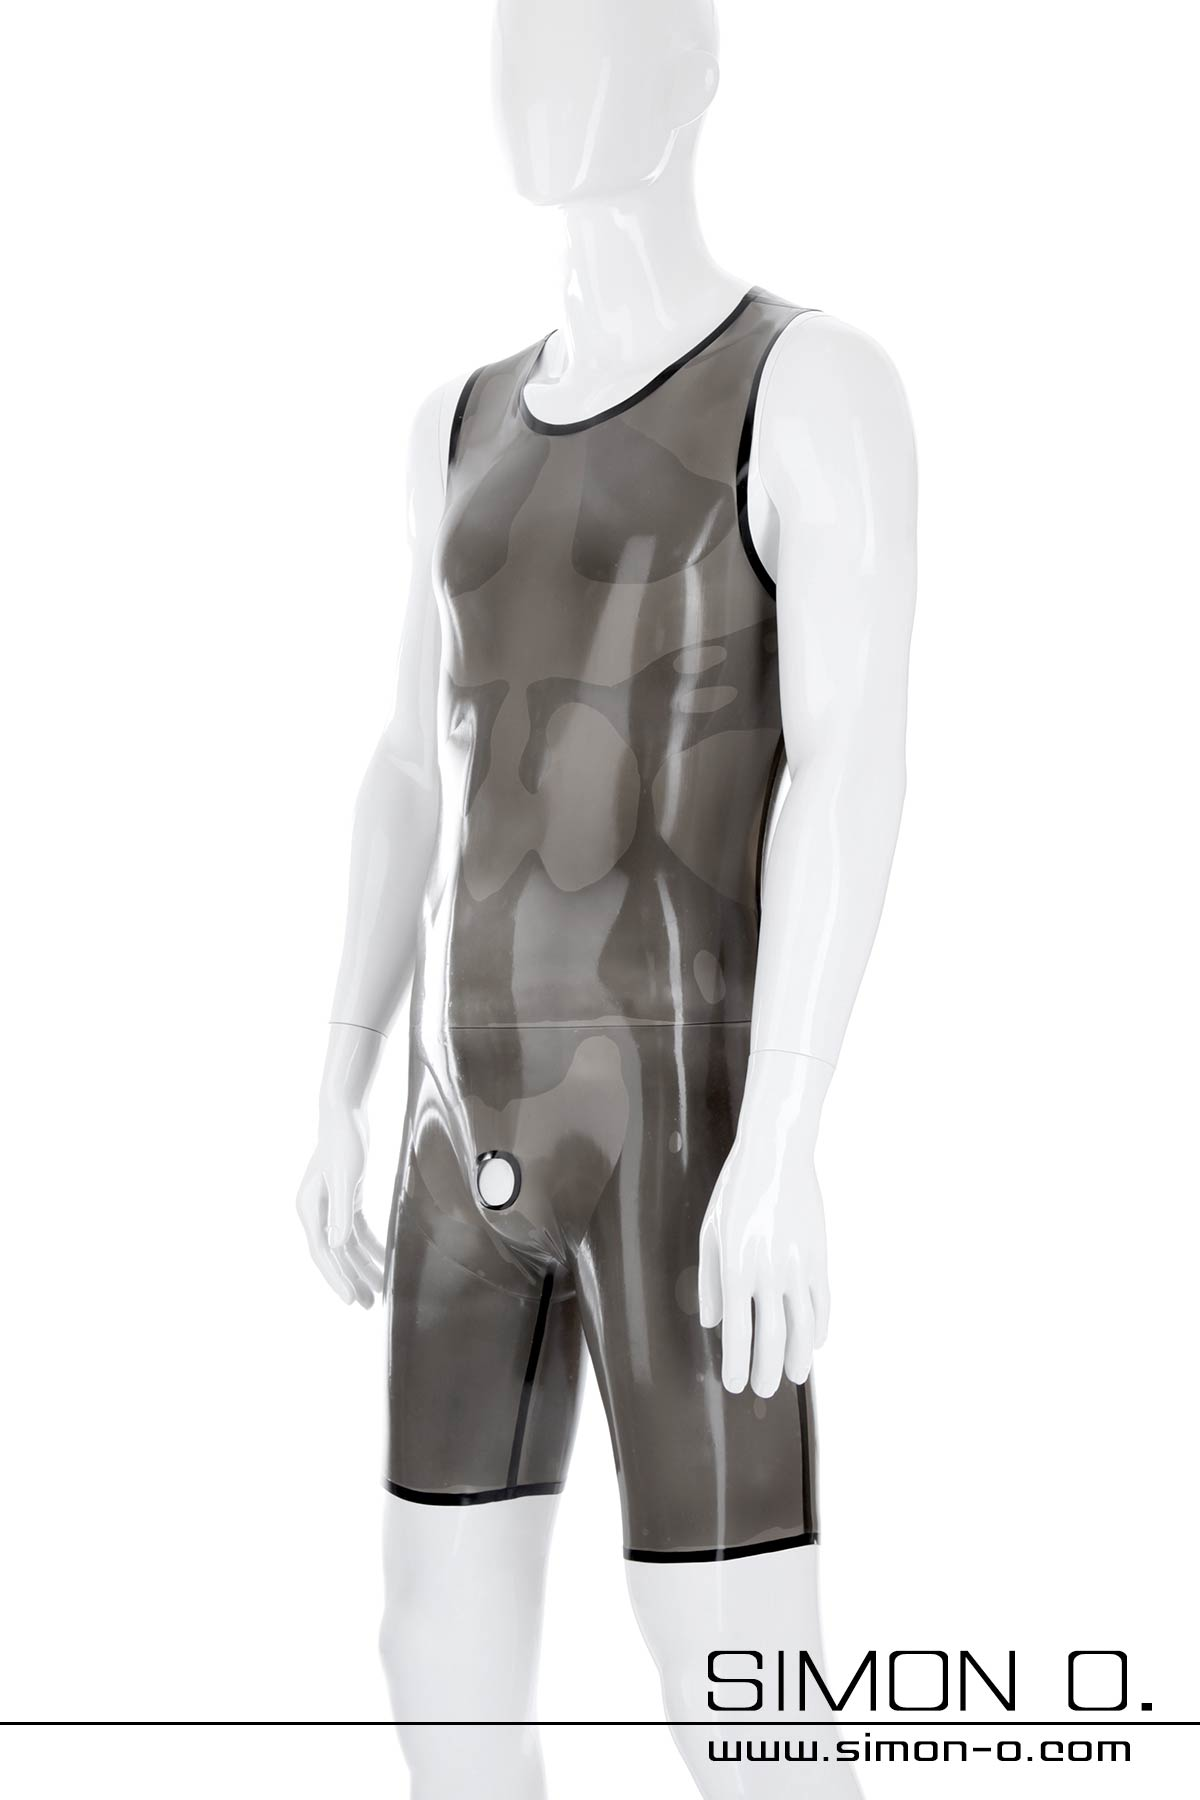 Latex body for men with genital opening or condom This skintight latex body for men can be worn discreetly under conventional clothing without attracting …